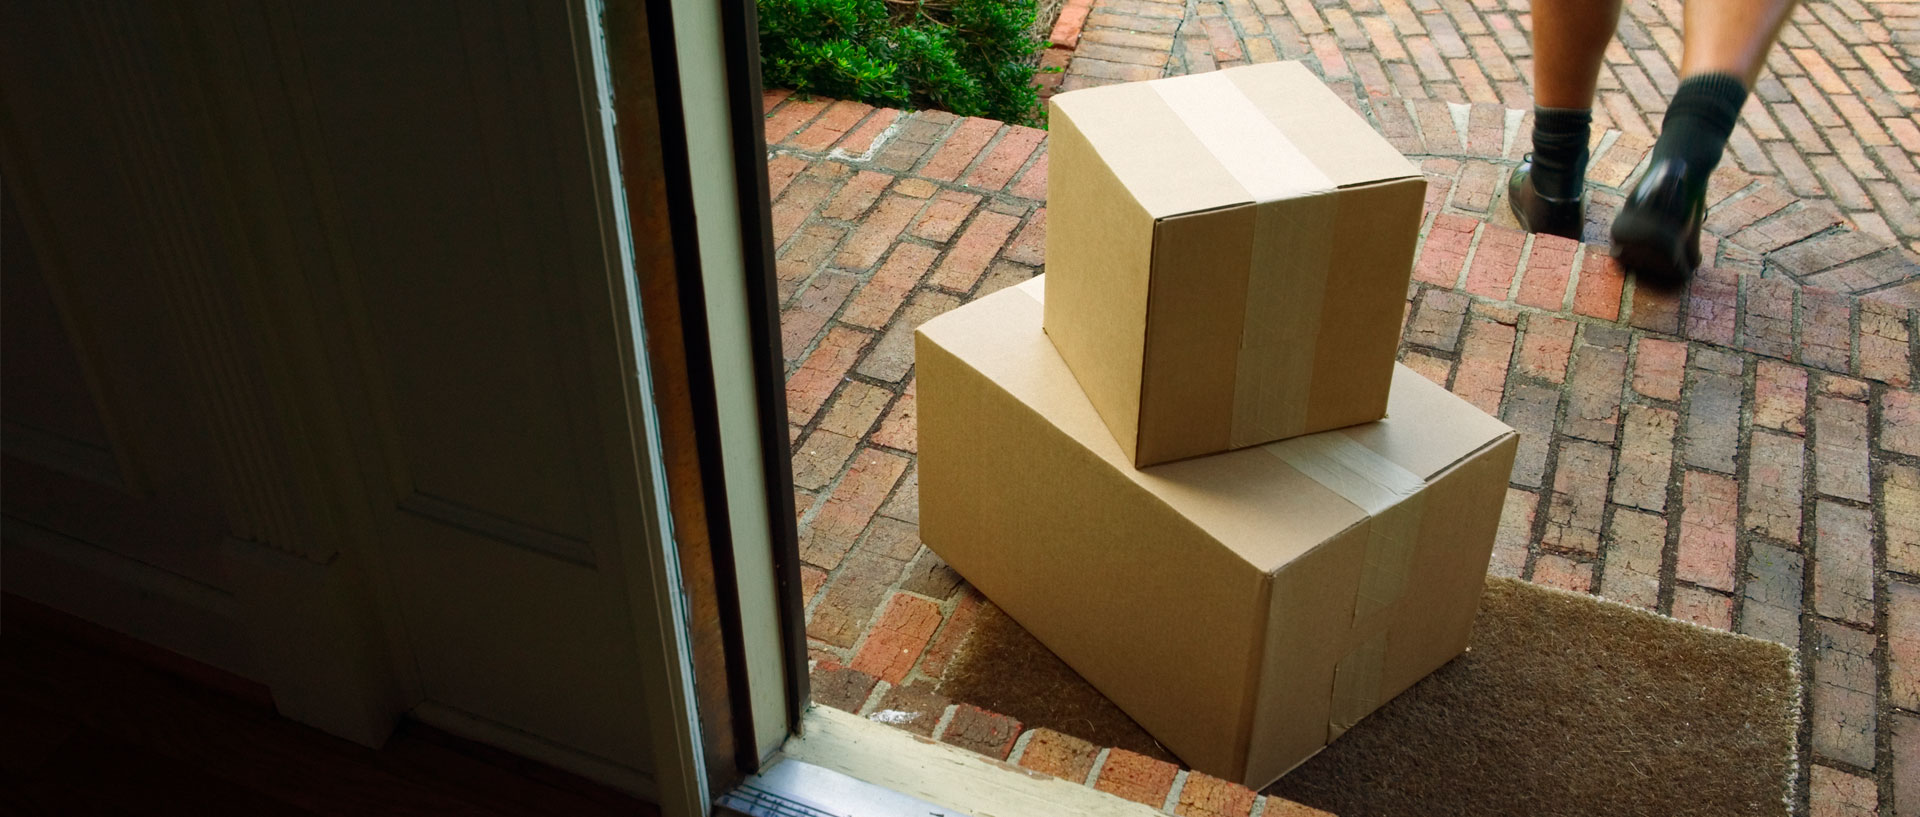 & How to Avoid Holiday Package Theft at Home - Consumer Reports